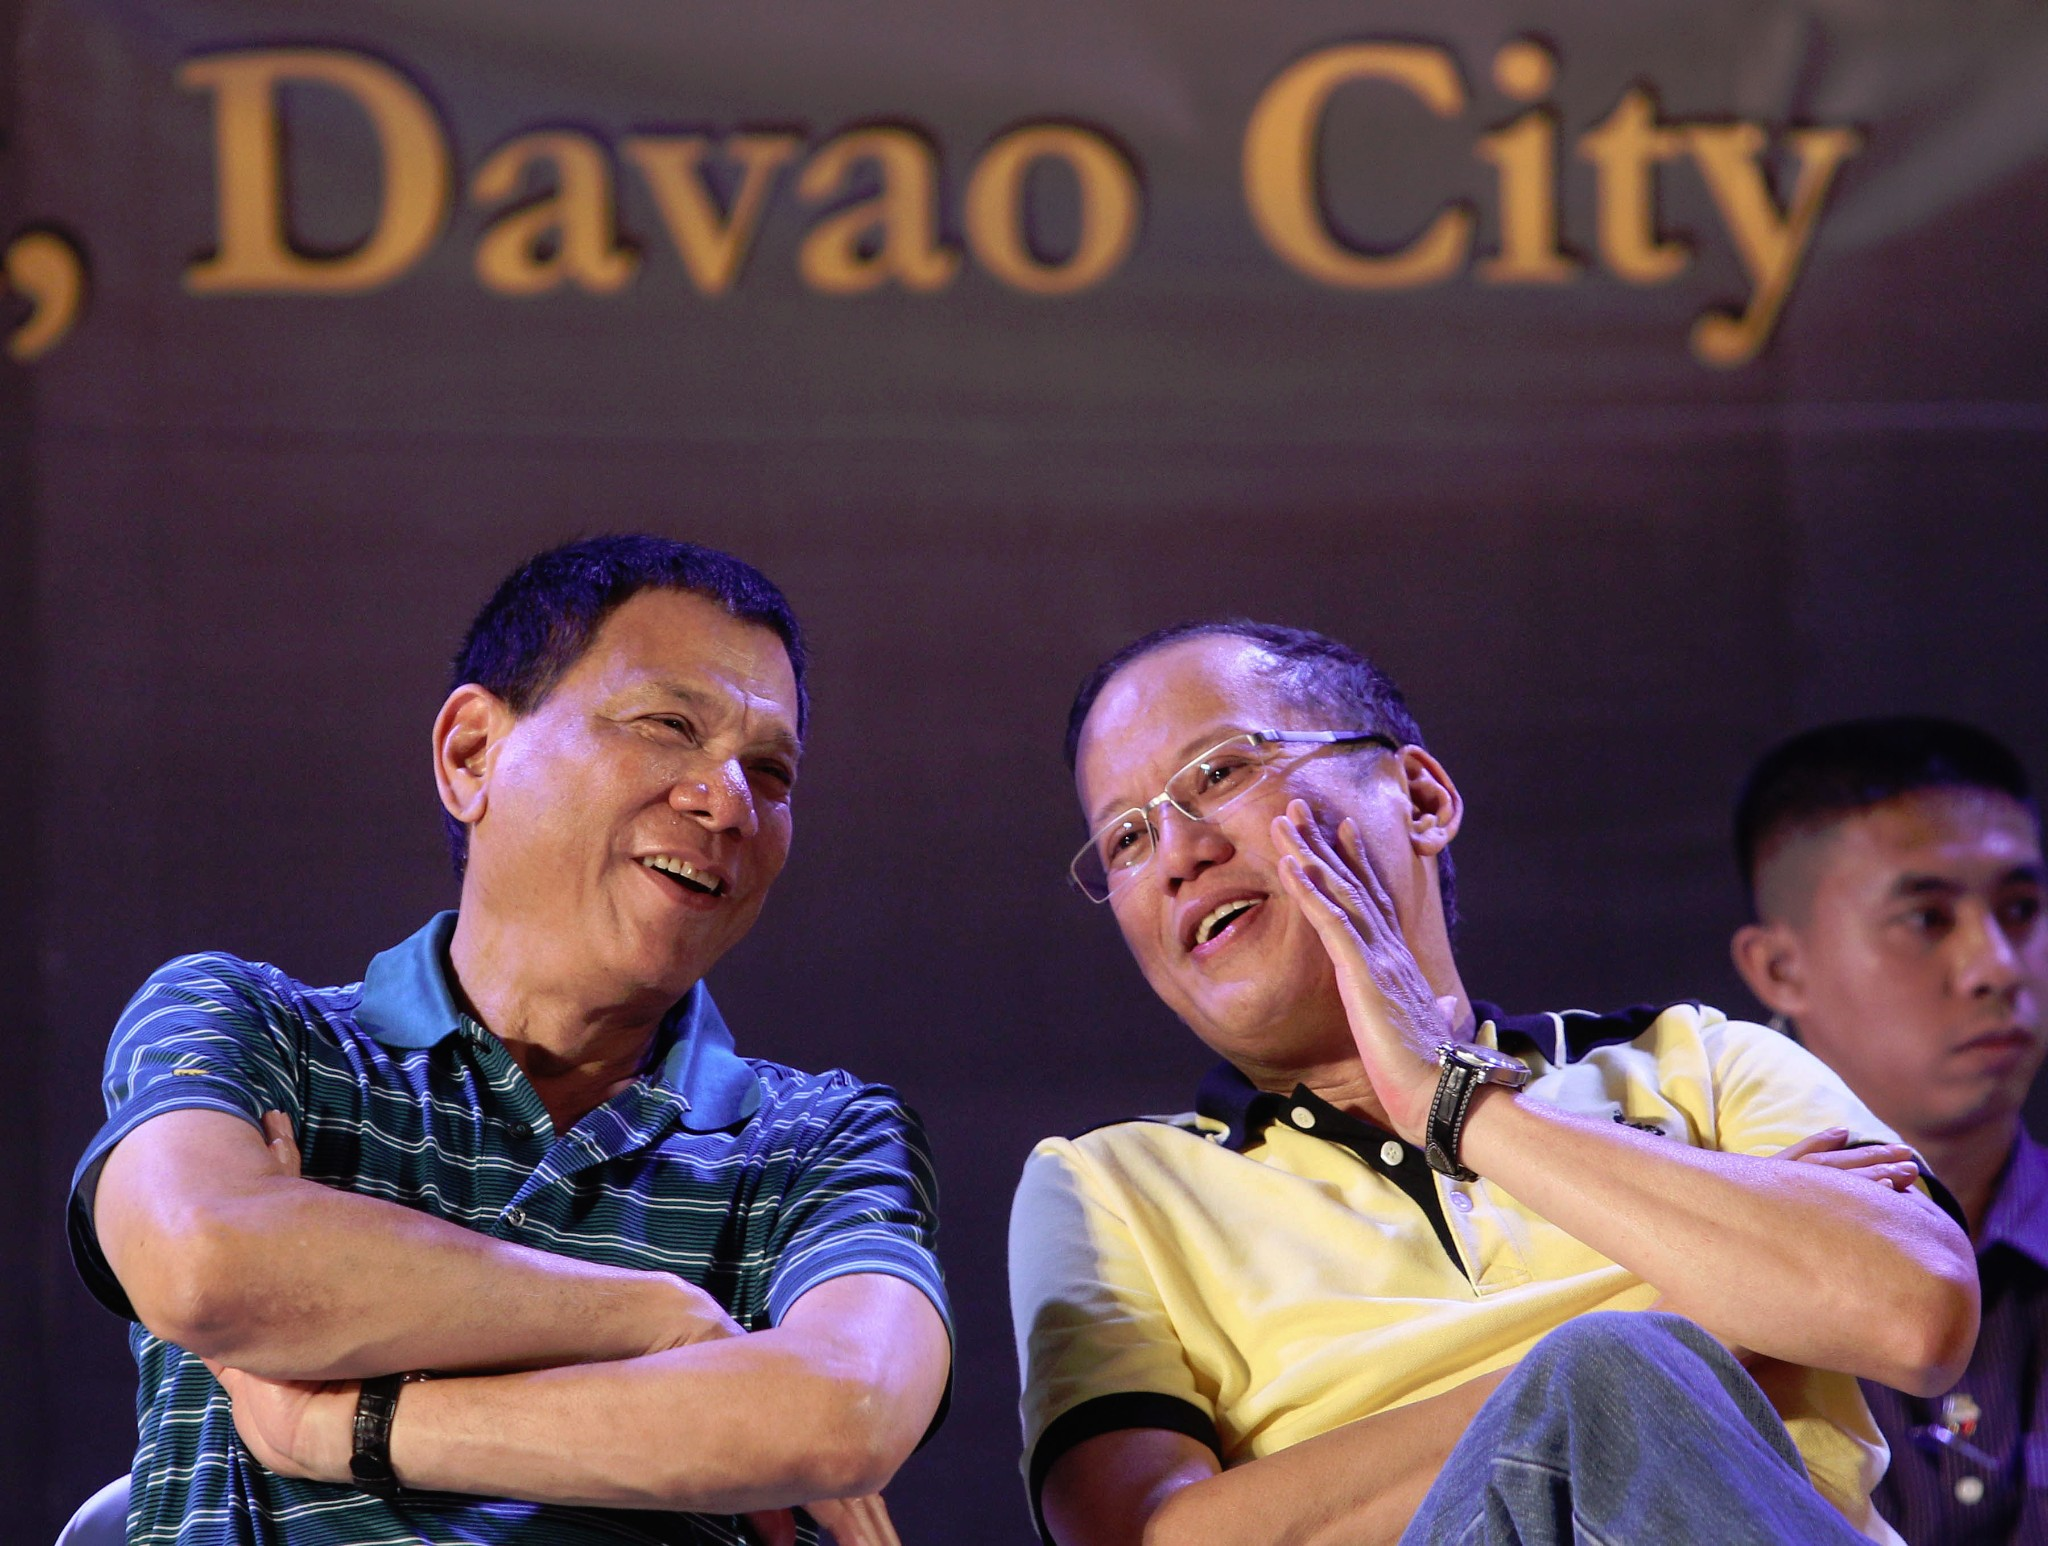 President Benigno S. Aquino III converses with Davao City Vice Mayor Rodrigo Duterte during the Meeting with Local Leaders and the Community at the Rizal Park in San Pedro Street, Davao City on Wednesday (March 06, 2013). The Liberal Party (LP) was founded on January 19, 1946 by Manuel Roxas, the first President of the Third Philippine Republic. (Photo by: Ryan Lim / Malacañang Photo Bureau).